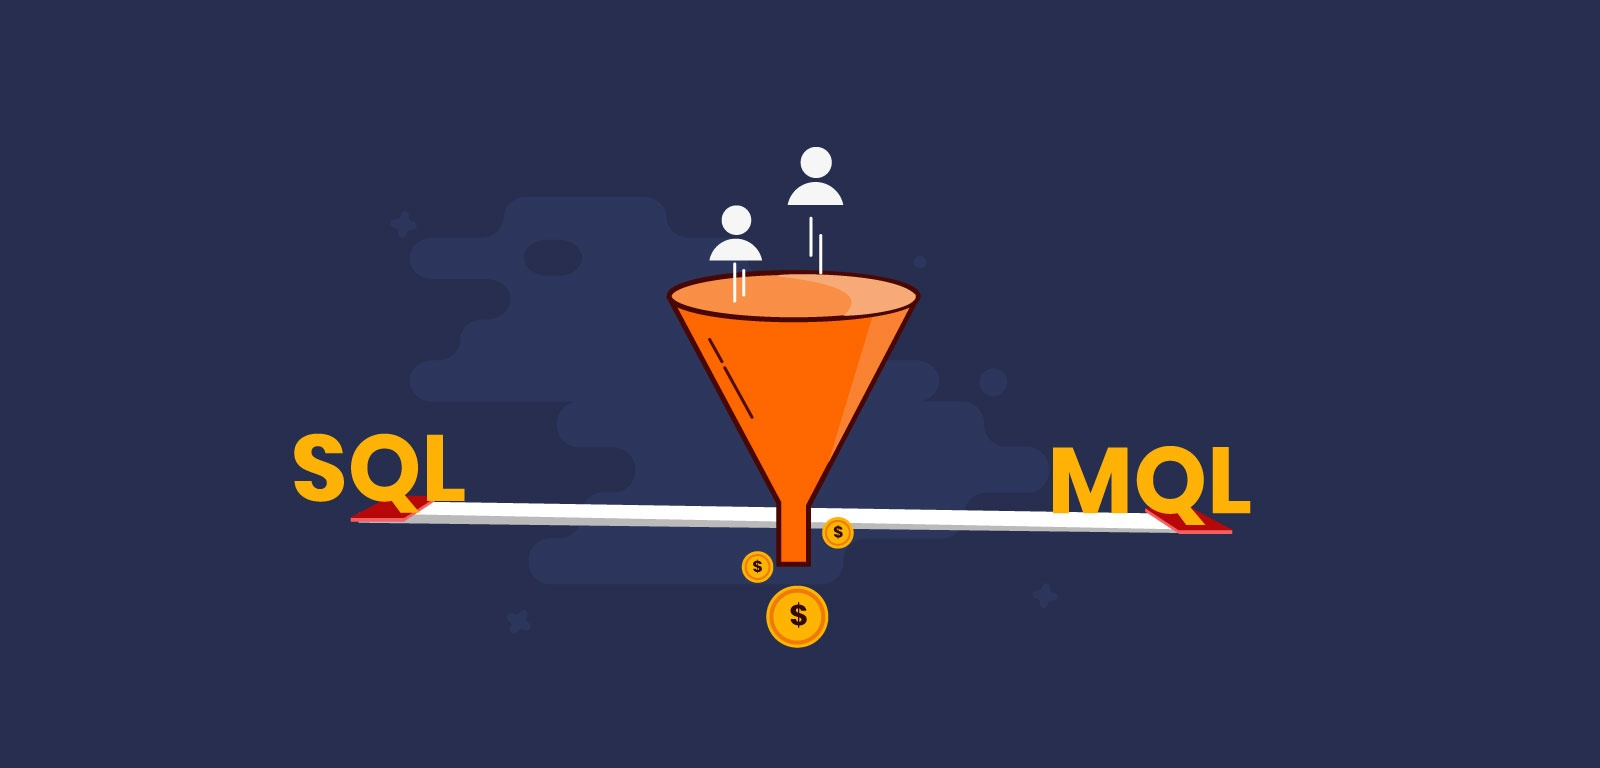 Differences between SQL and MQL